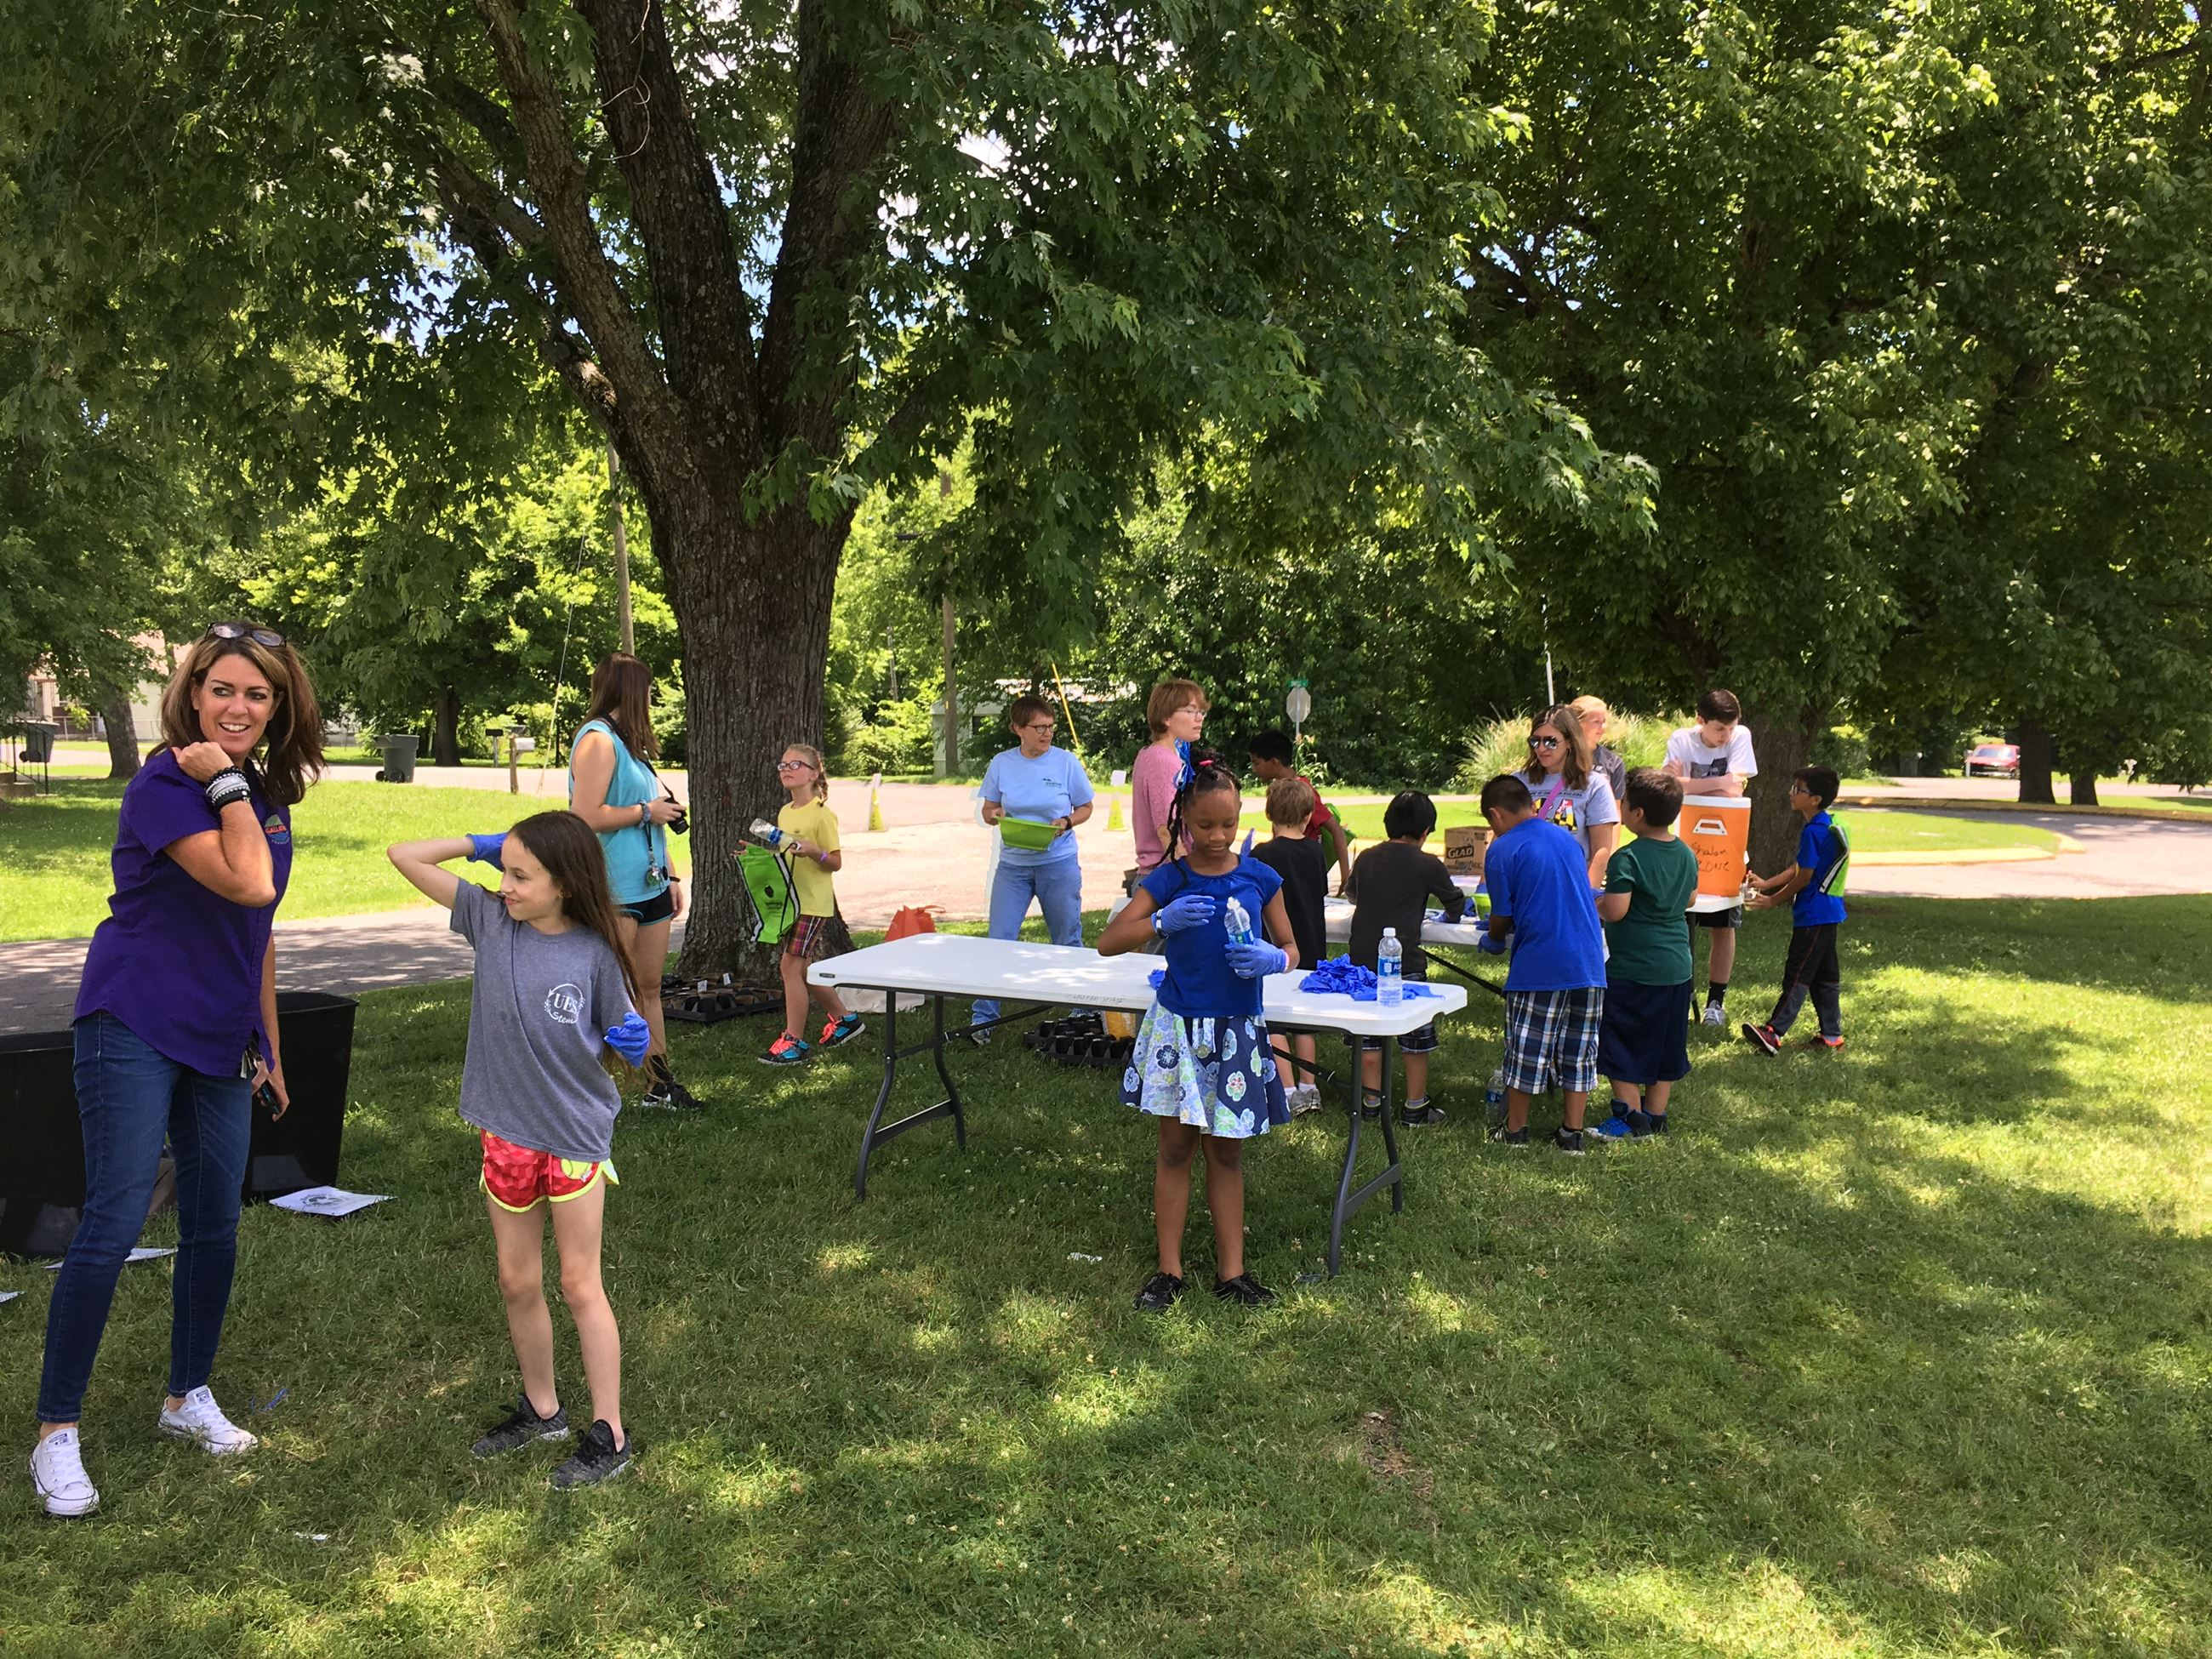 Volunteers interacting With Children outdoors under Trees